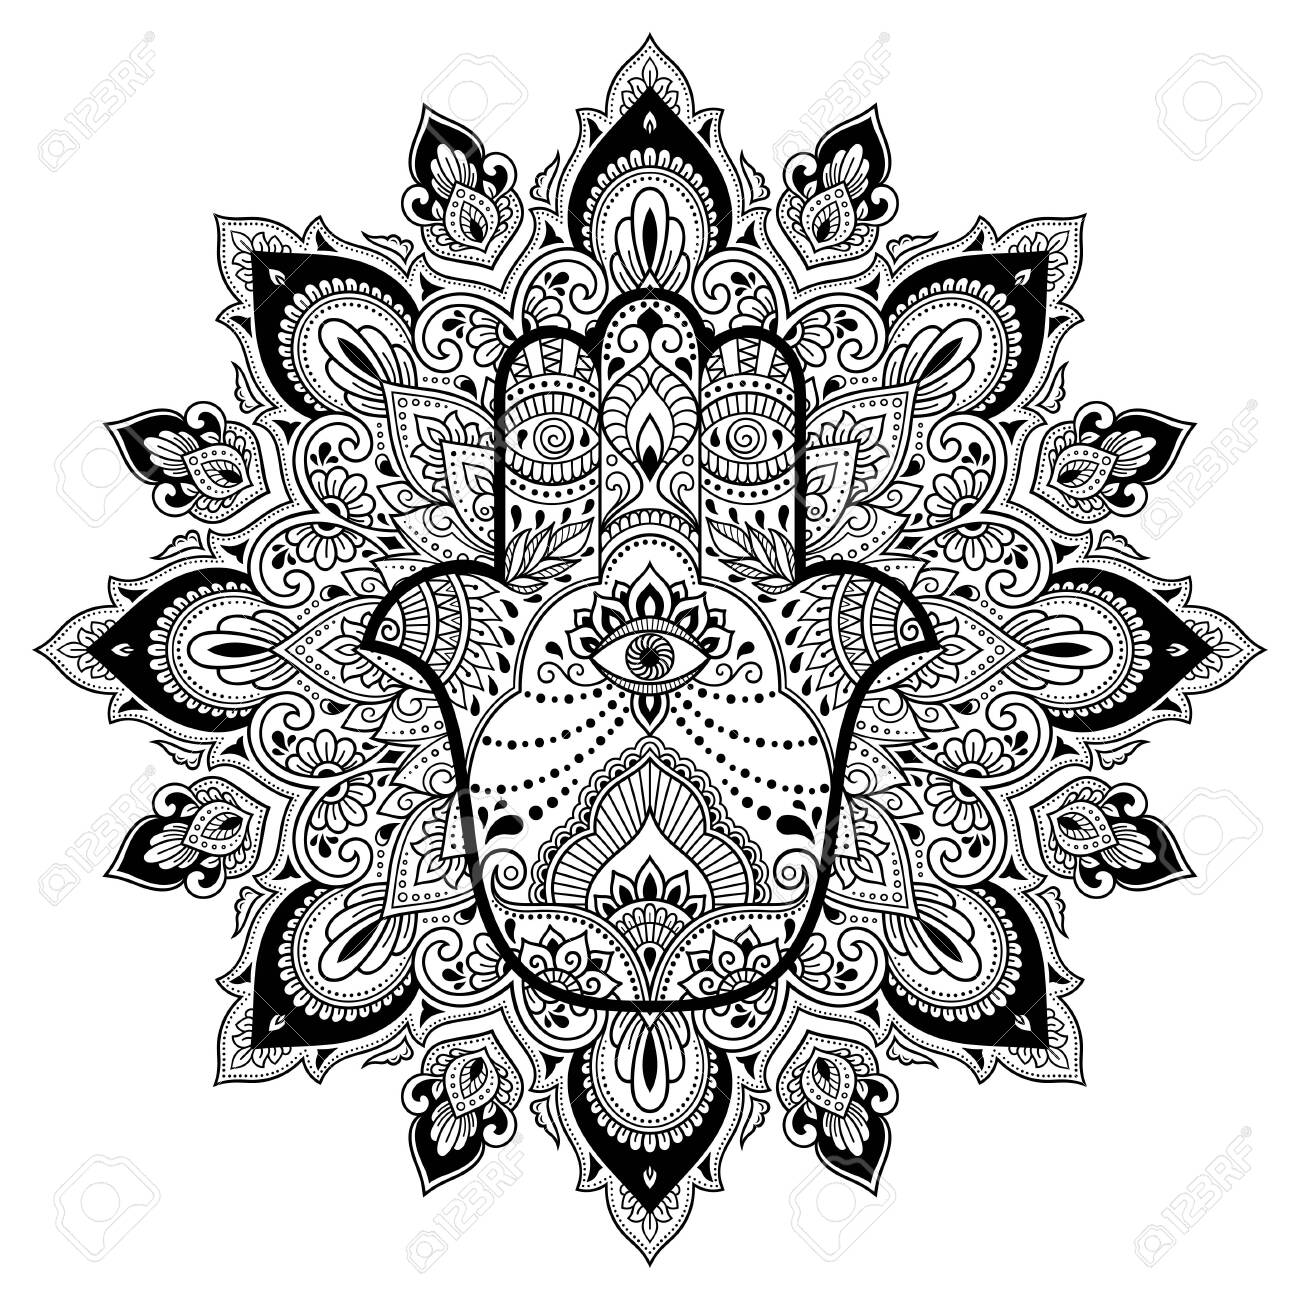 Circular pattern in form of mandala for Henna, Mehndi, tattoo, decoration. Decorative ornament in oriental style with Hamsa hand drawn symbol. Coloring book page. - 134466160